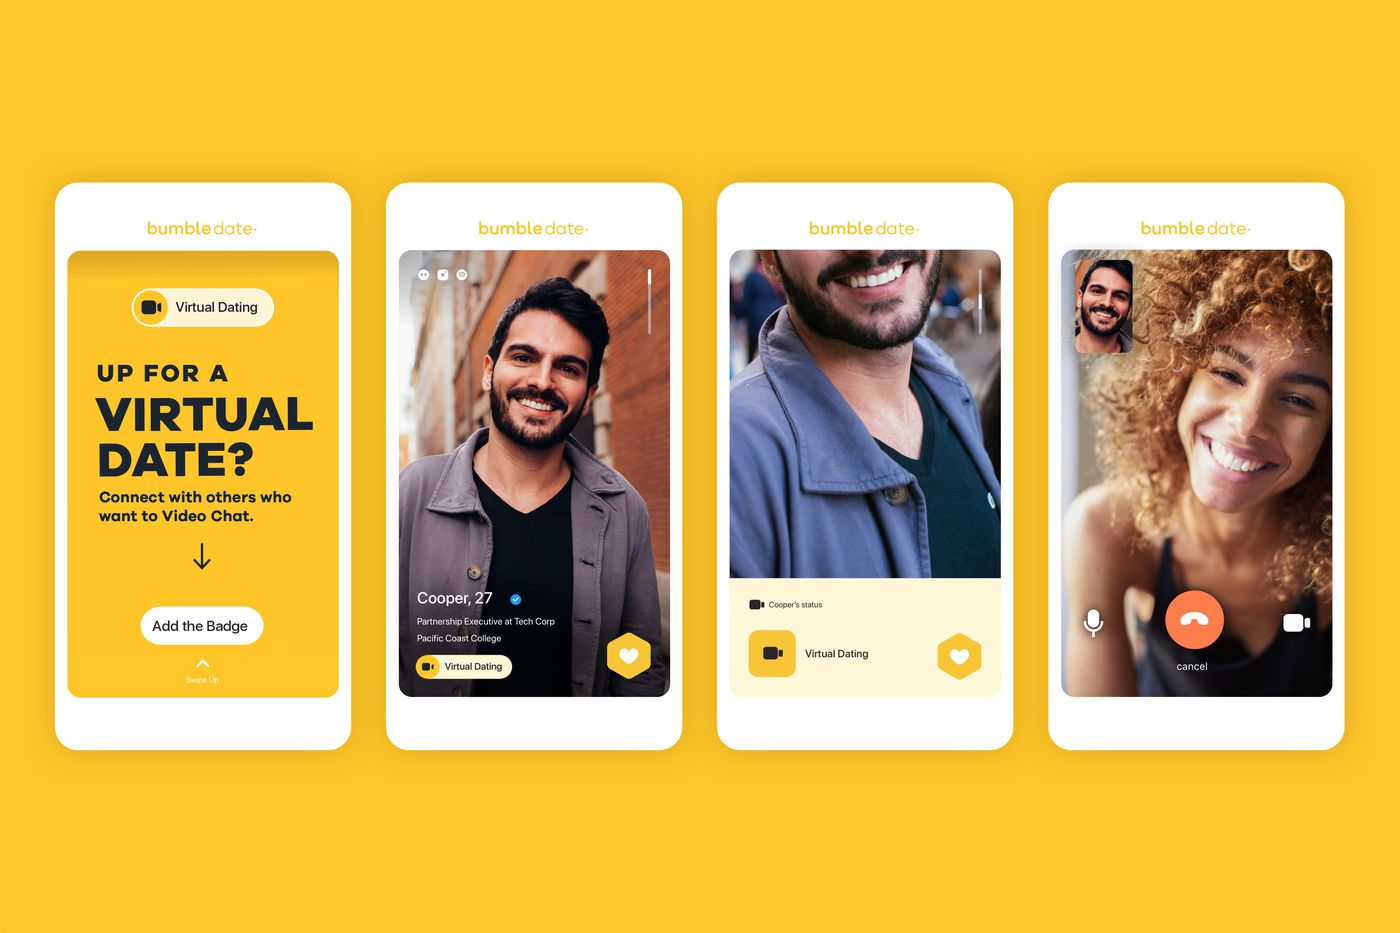 How To Delete Your Bumble Account